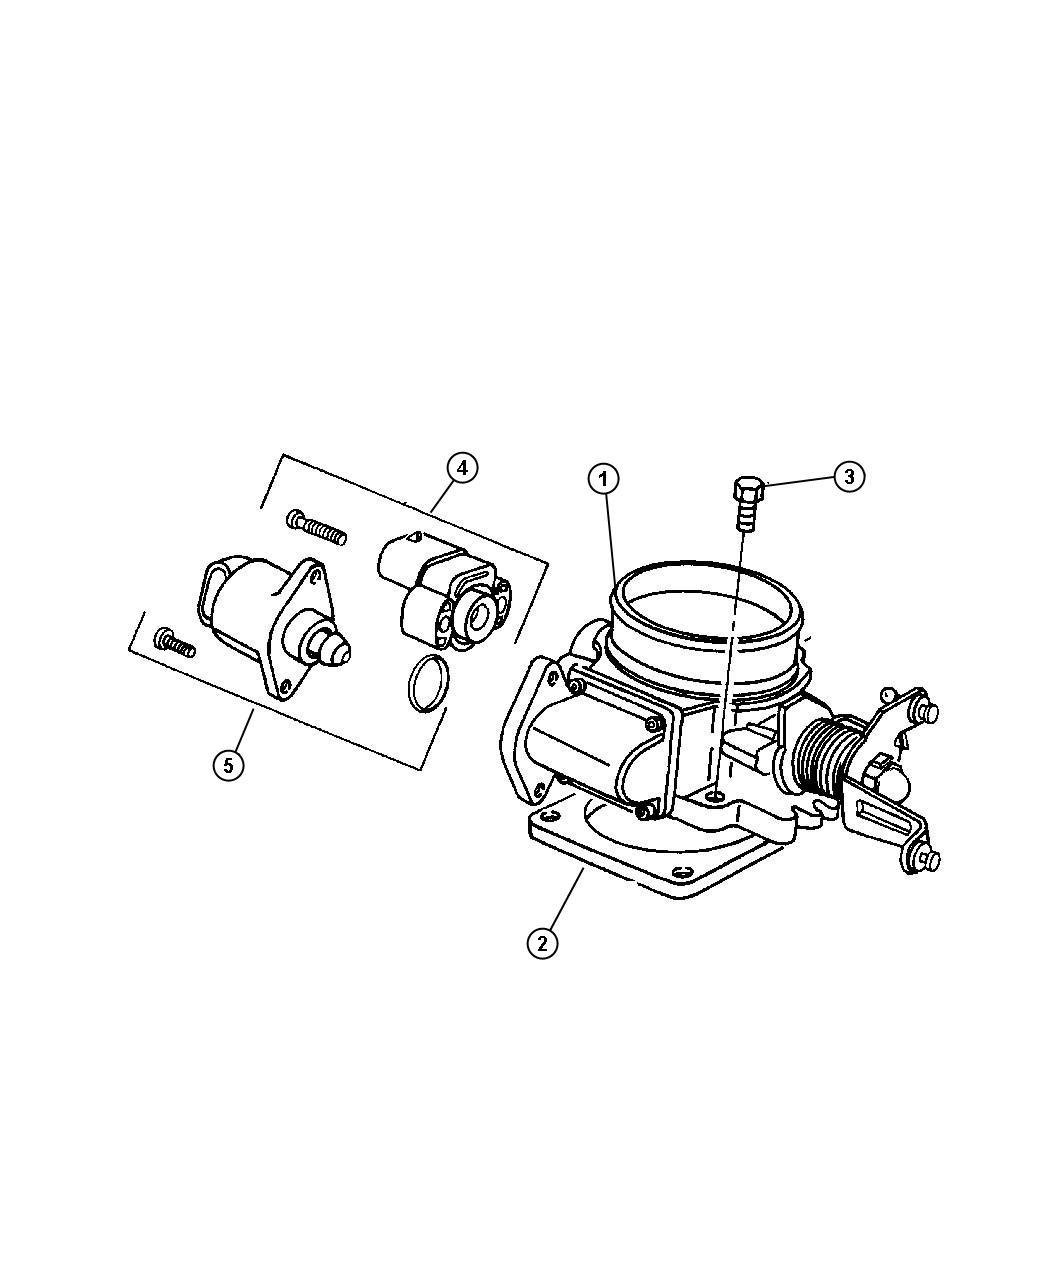 [DIAGRAM] 91 Chrysler Throttle Body Diagram FULL Version